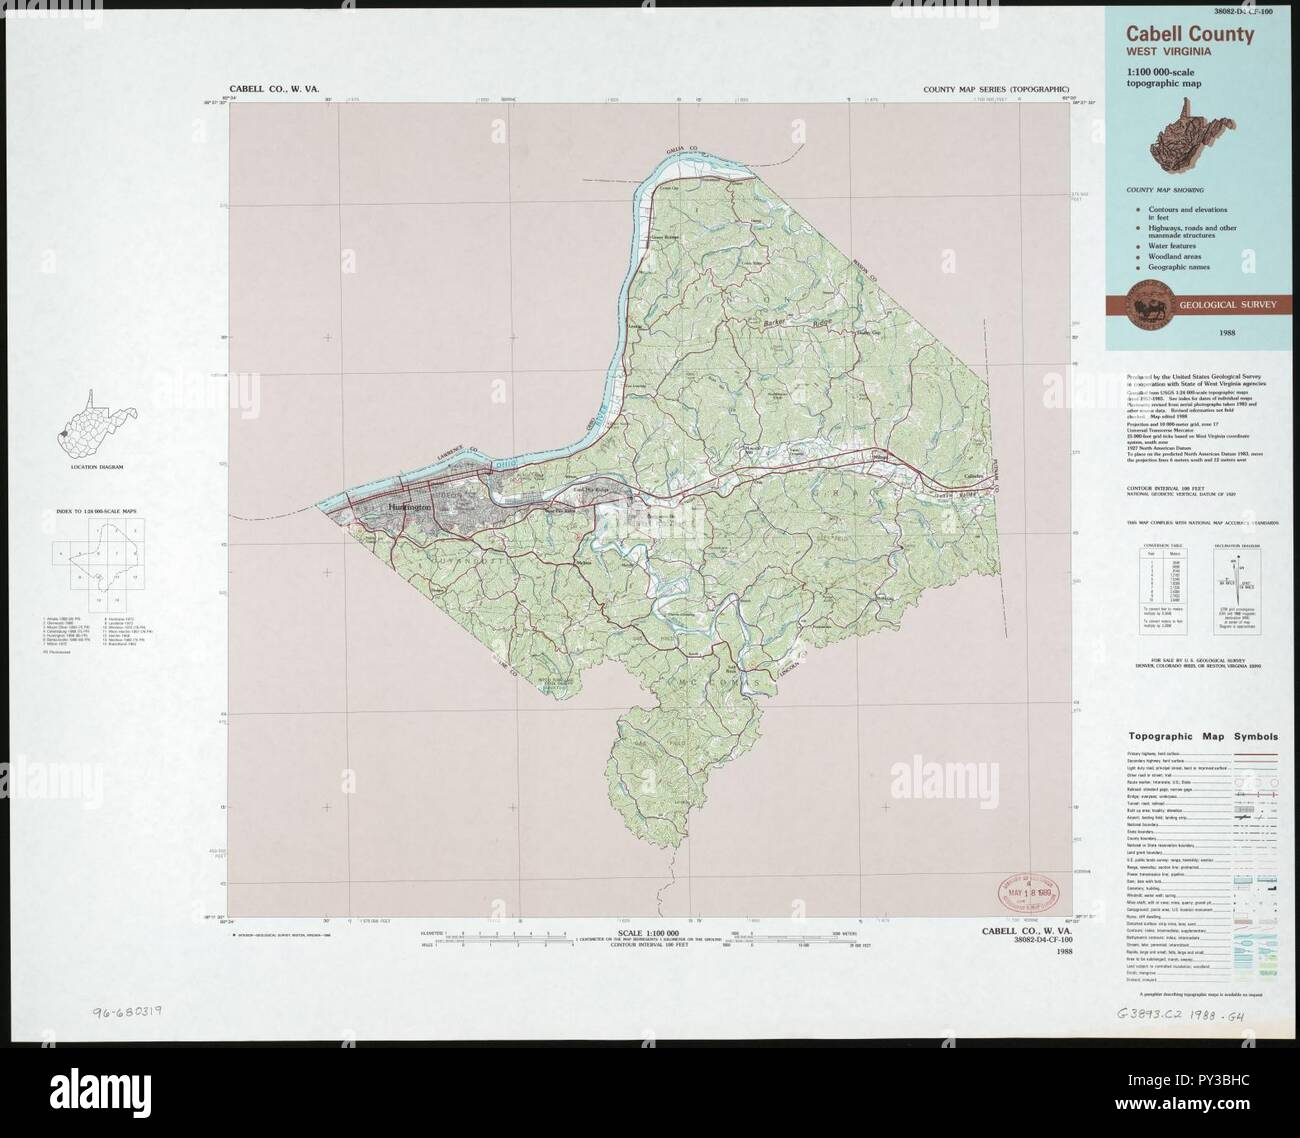 Cabell County West Virginia 1 100 000 Scale Topographic Map Stock